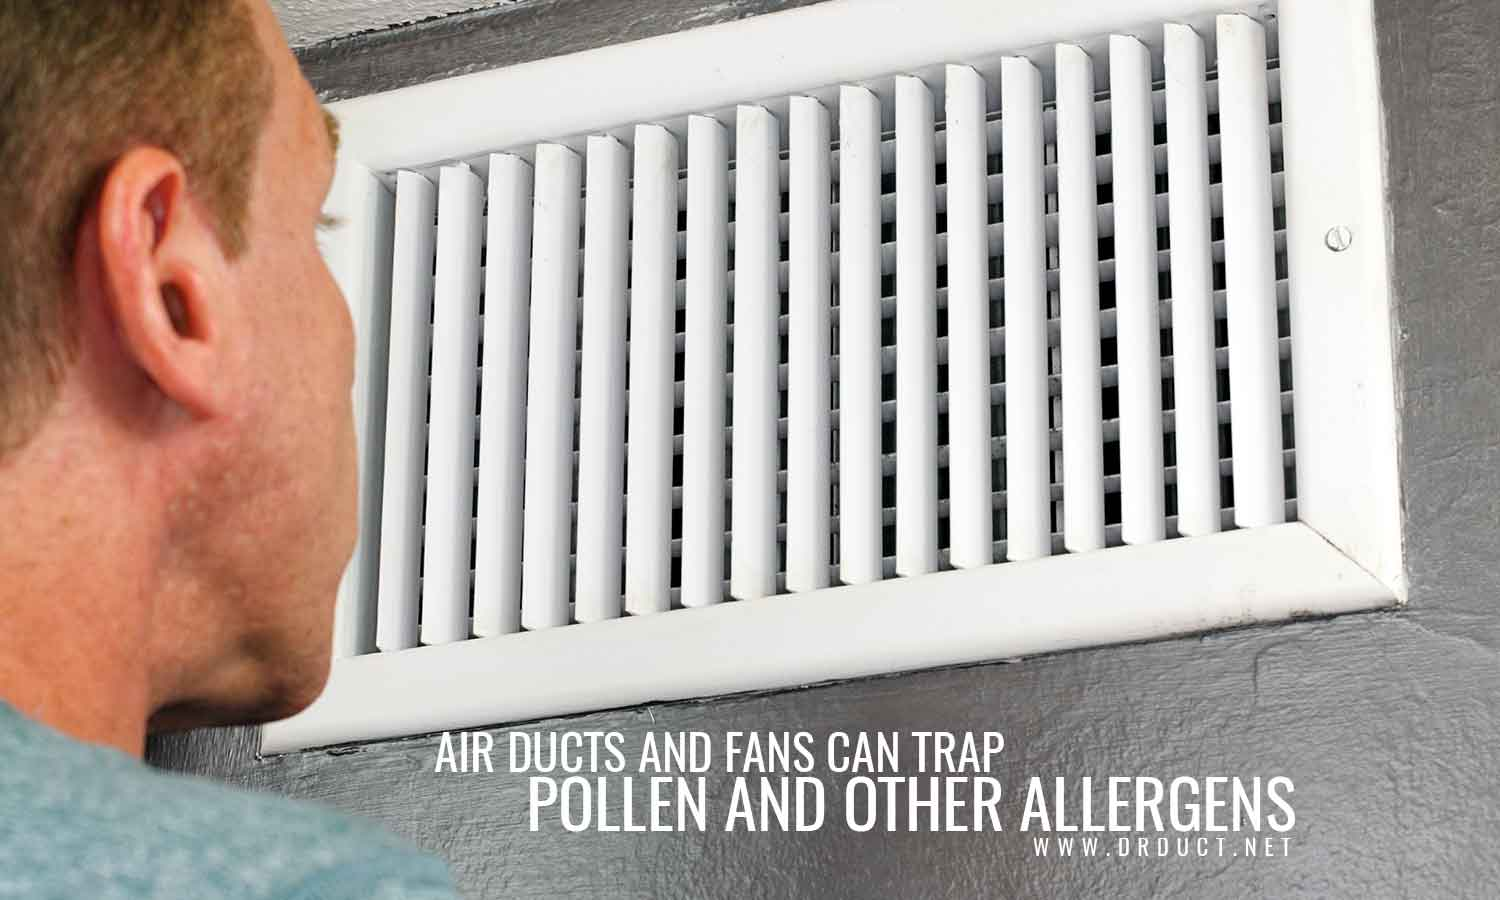 Air ducts and fans can trap pollen and other allergens